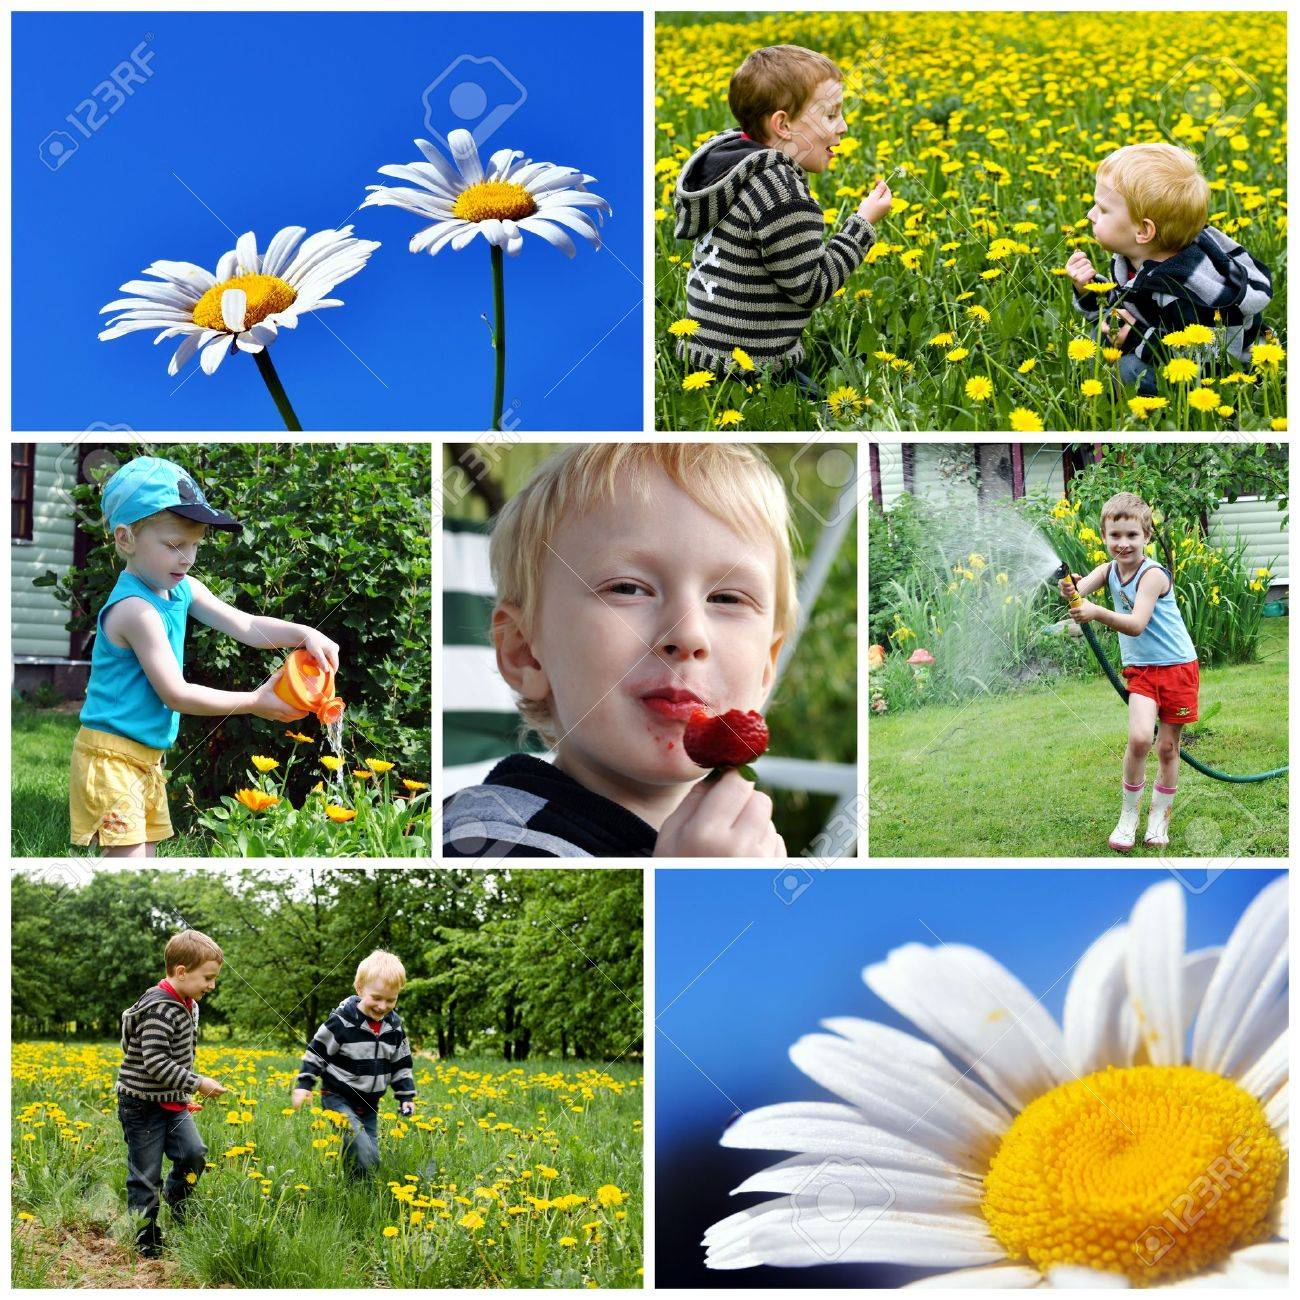 children and summer collage Stock Photo - 5202236